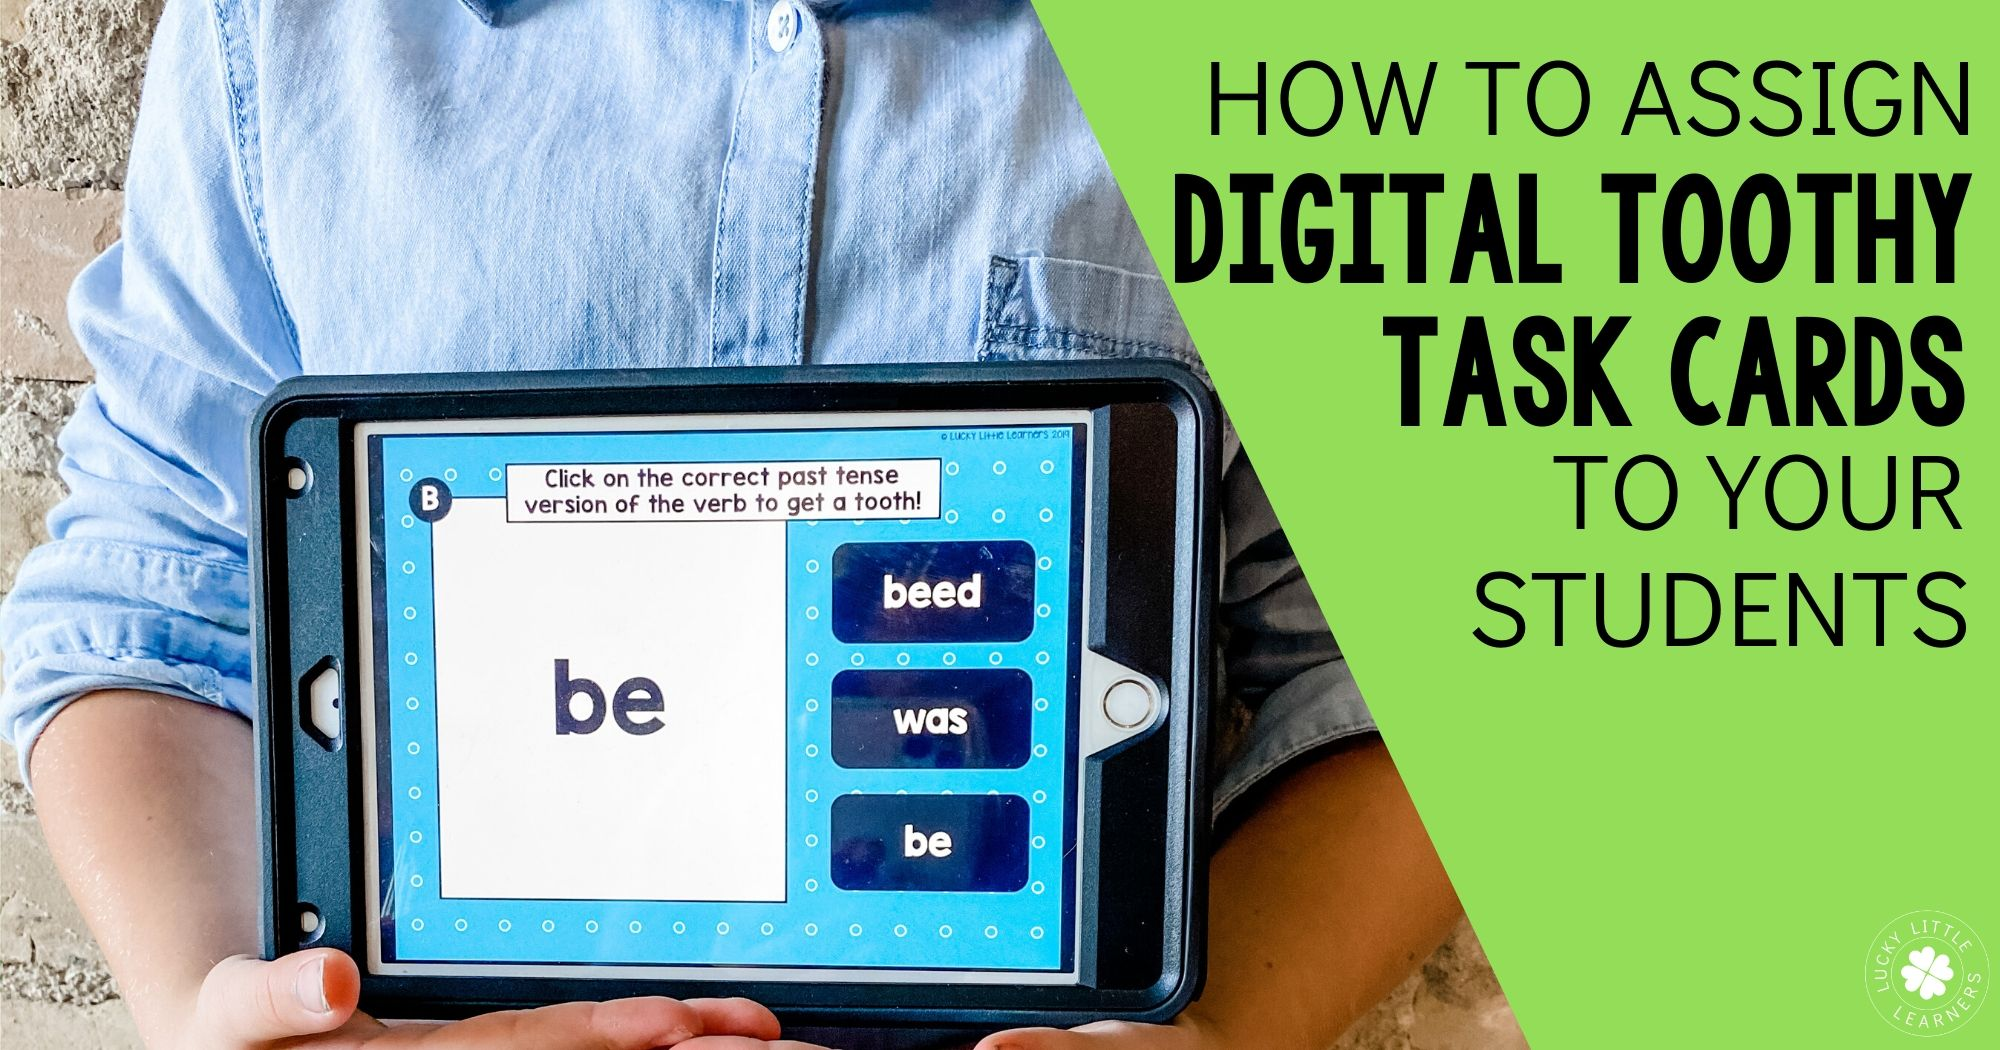 How to Assign Digital Toothy to your Students